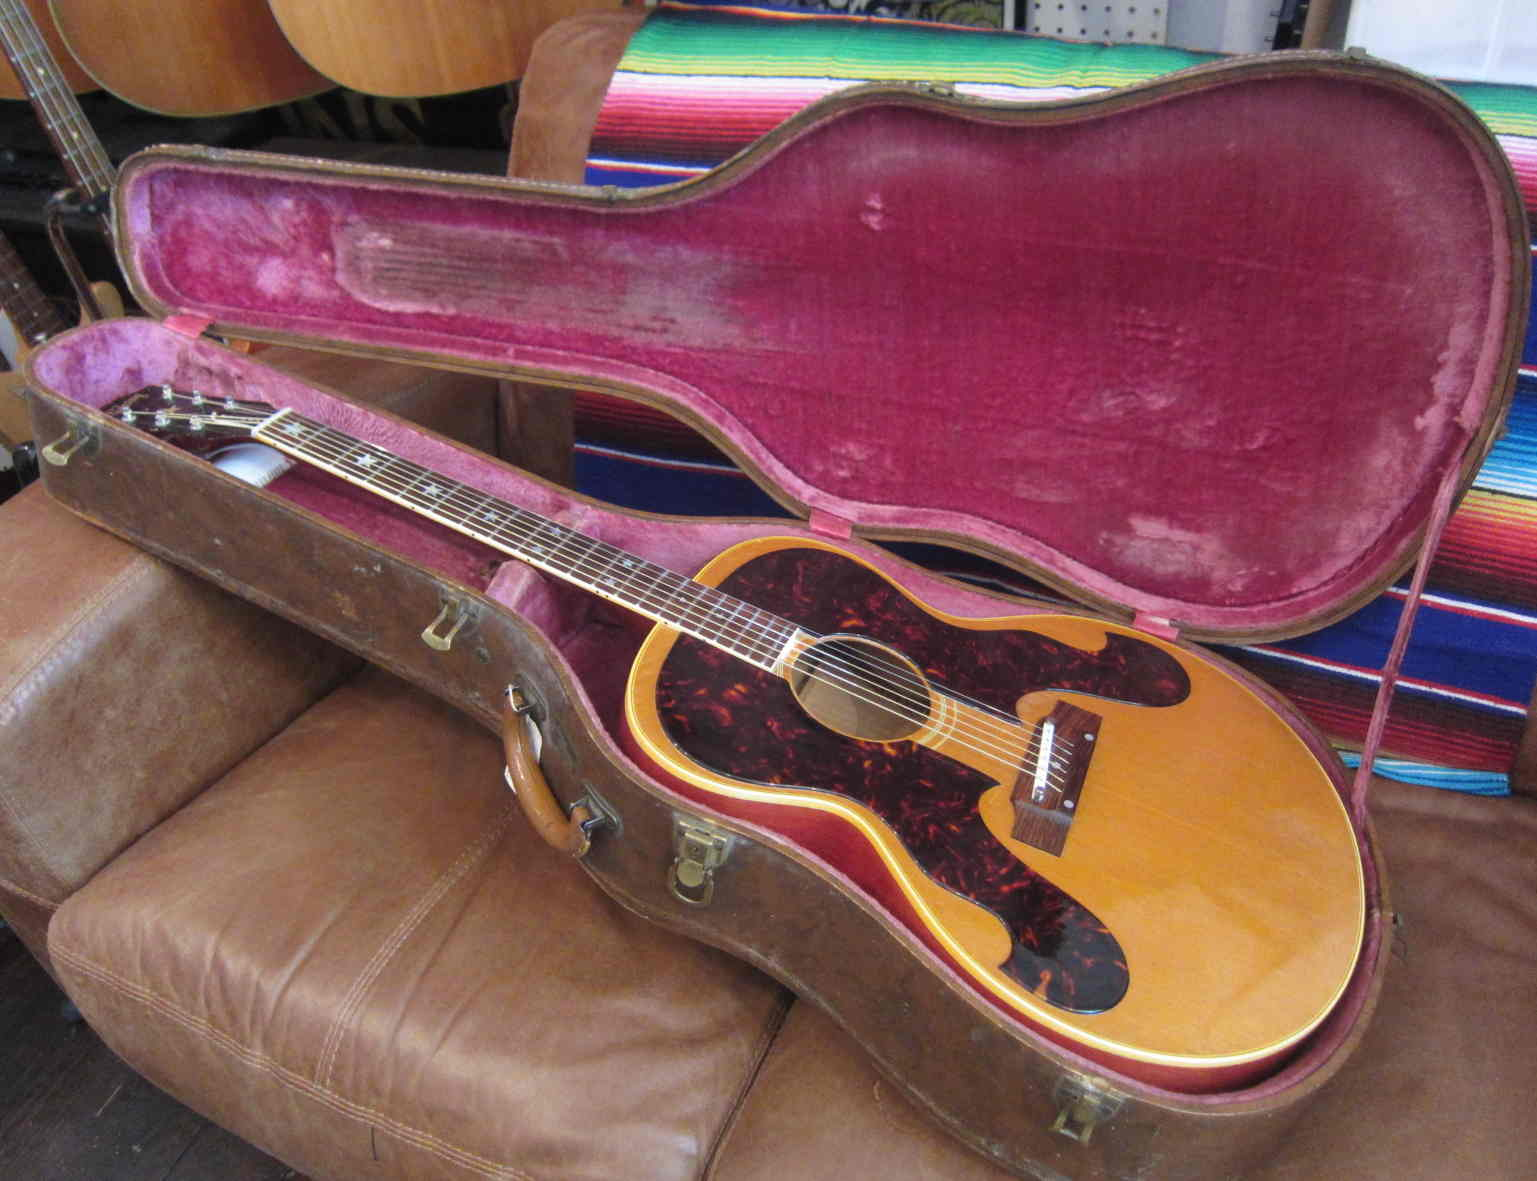 gibson everly brothers 1963 guitar for sale new kings road guitars. Black Bedroom Furniture Sets. Home Design Ideas